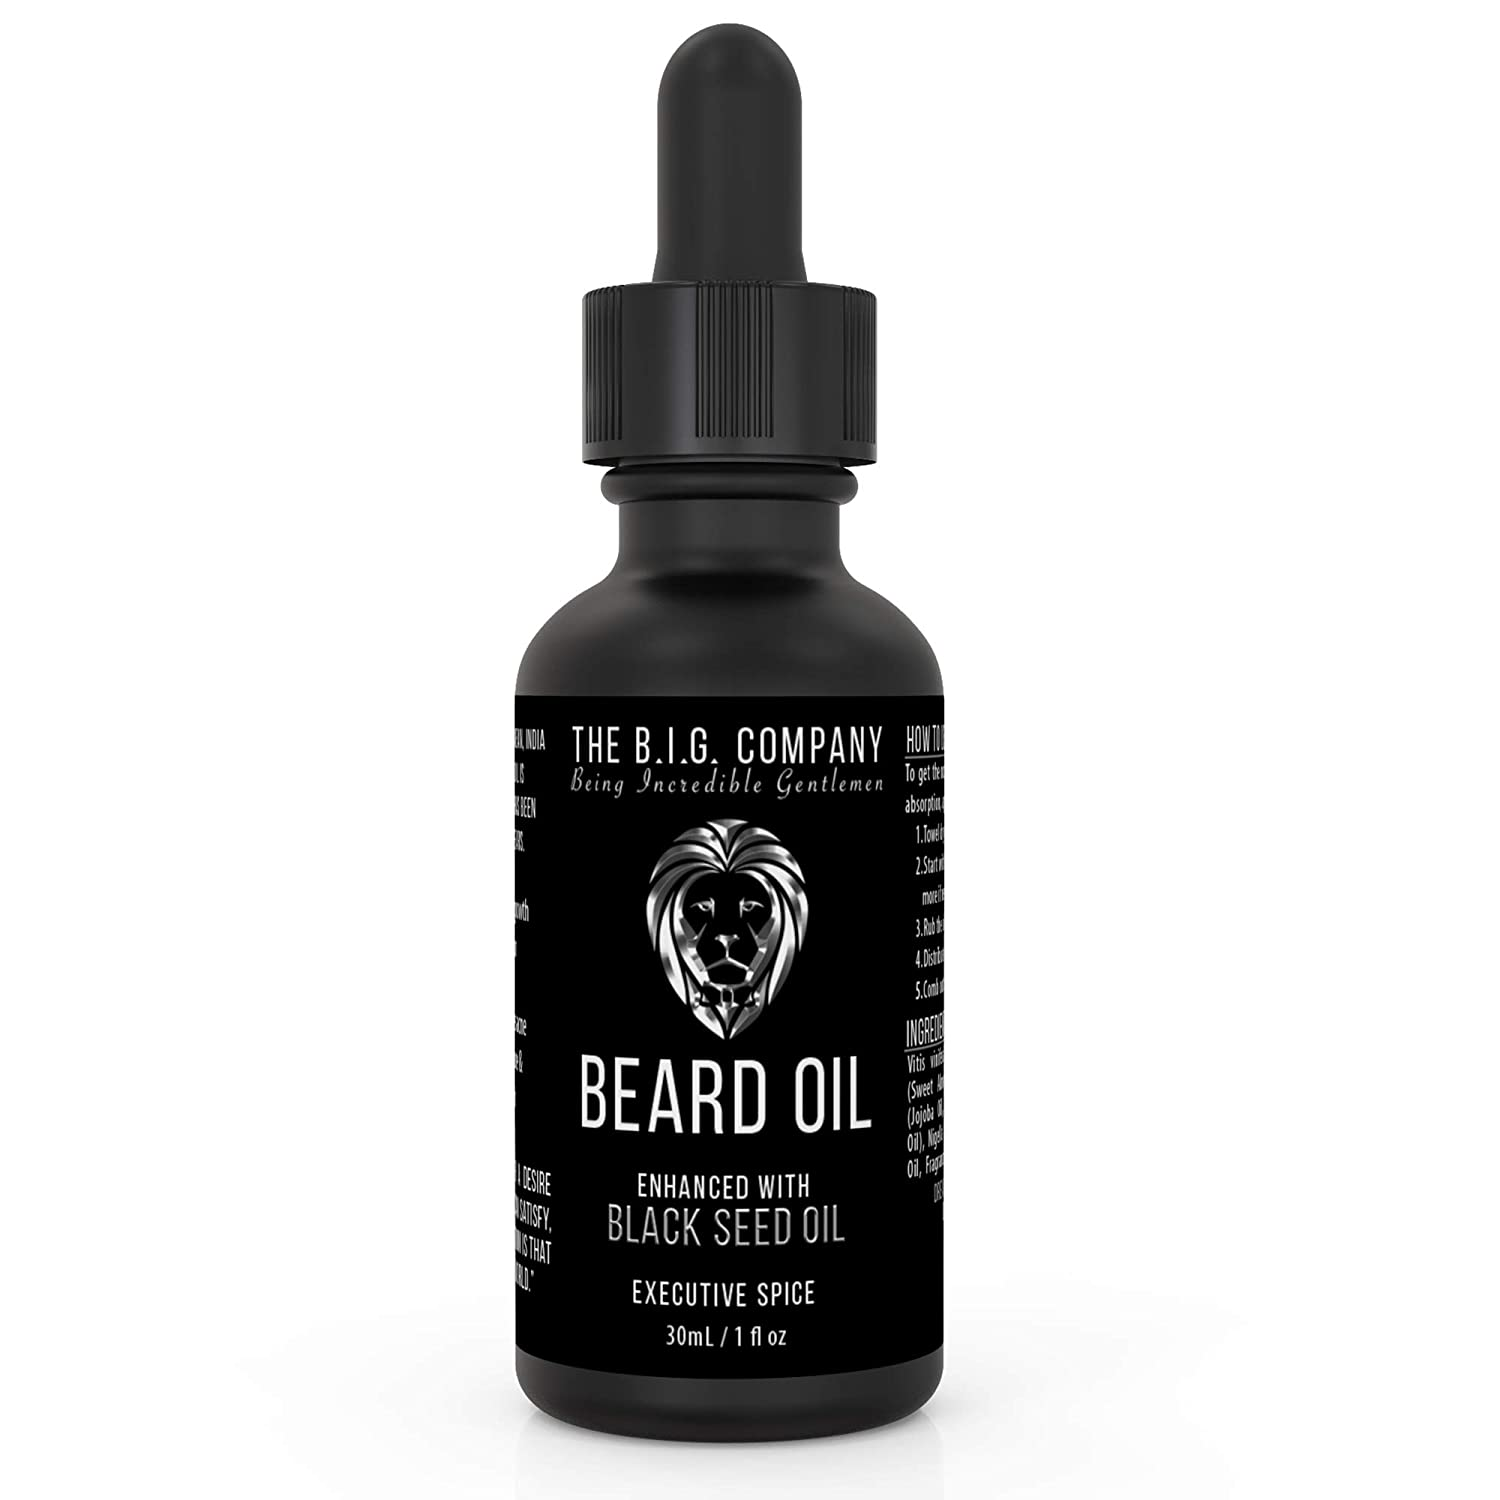 The B.I.G. Company Beard Oil – Made in Canada – Infused with Jojoba Oil & Ancient Blackseed Oil for Promoting Moustache & Beard Growth, Deep Conditioning, Anti-Aging & Helps Acne Prone Skin – Stops Itching, Strengthens Beard – Key t